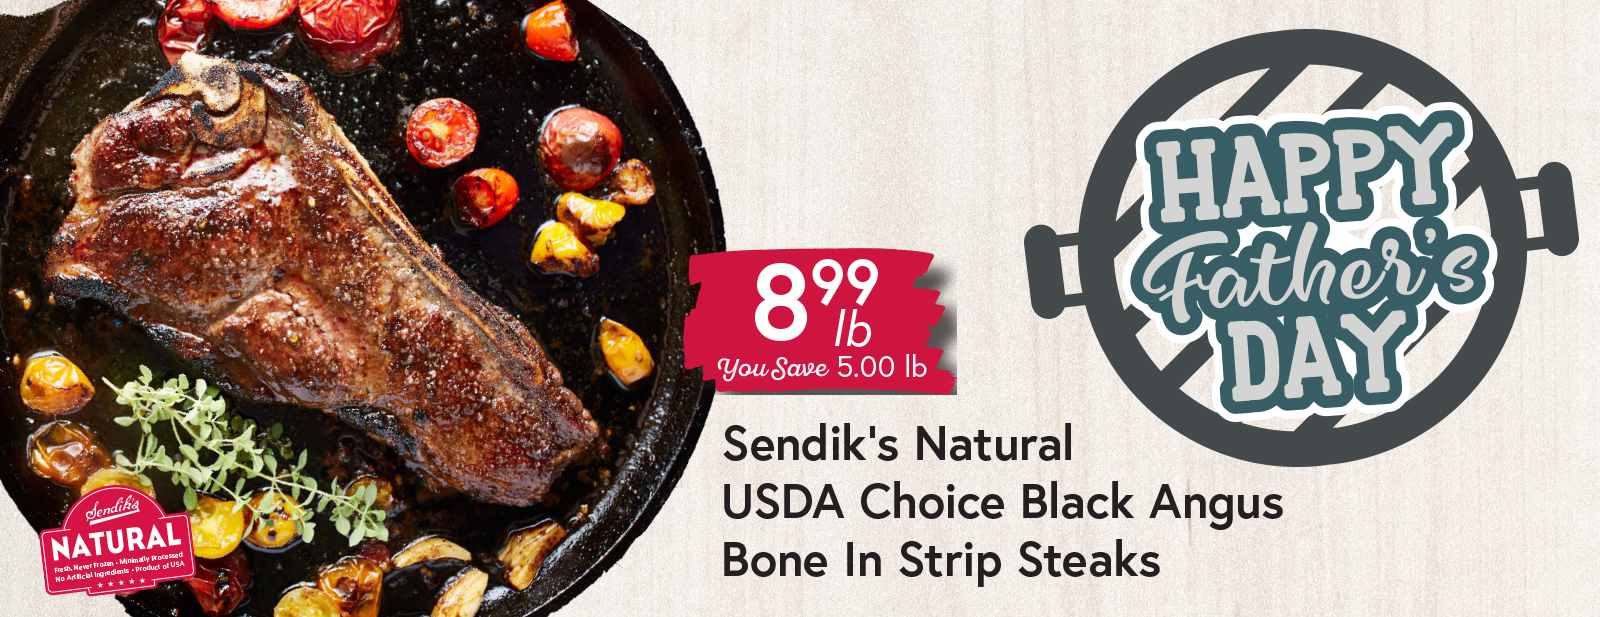 Sendik's Natural USDA Choice Black Angus Bone In Strip Steaks $8.99 lb